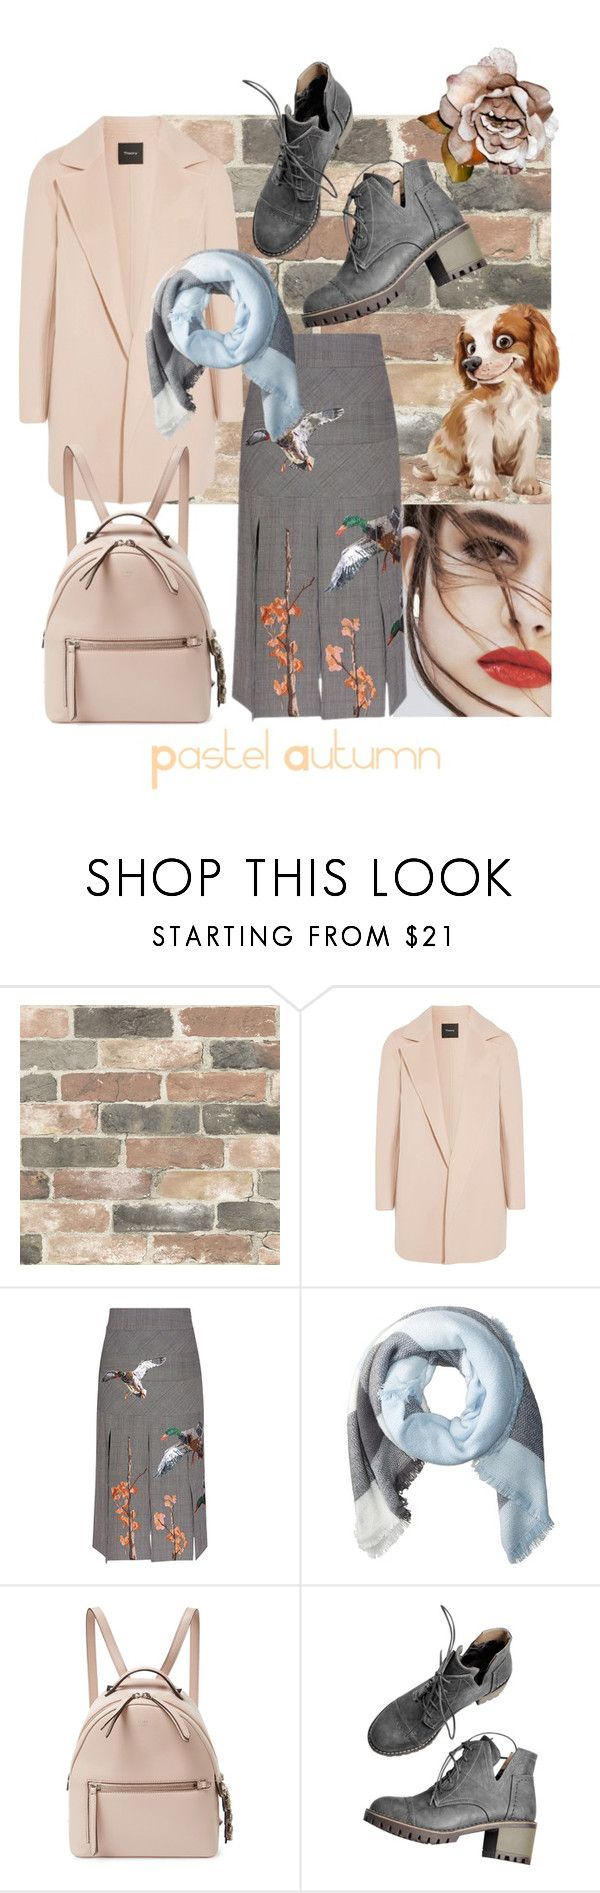 """""""Pastel autumn"""" by sitiraniausemahu ❤ liked on Polyvore featuring Lily Jean, Wall Pops!, Theory, Stella Jean, Hat Attack, Fendi, girly, pastel and autumn2017"""